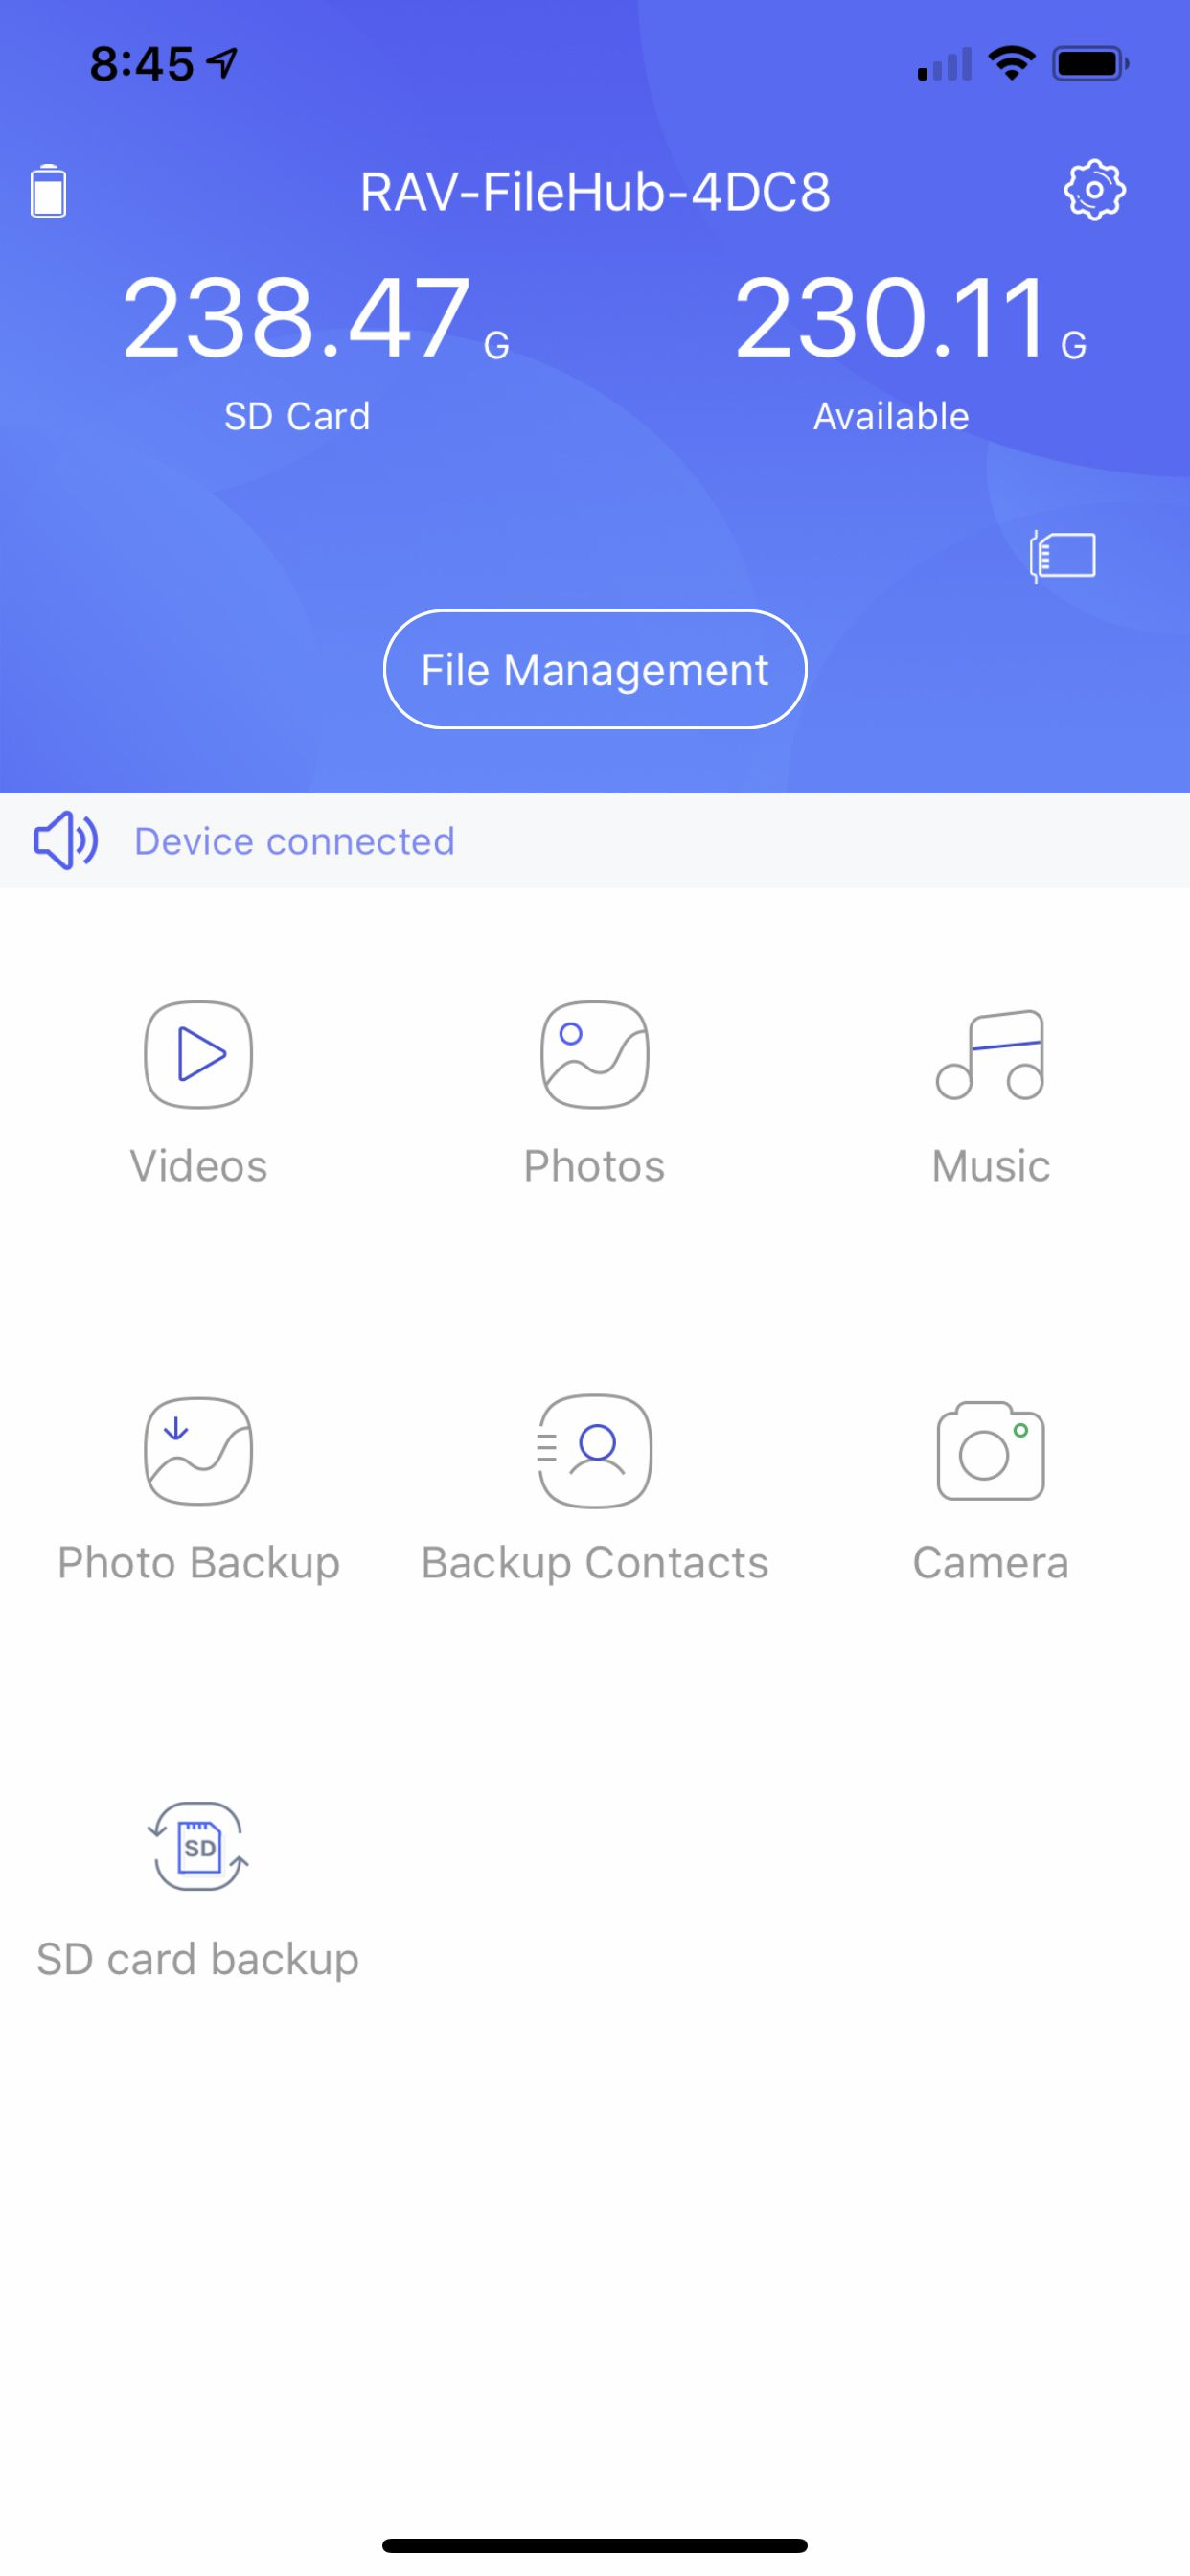 The main screen of the Filehub app on iPhone